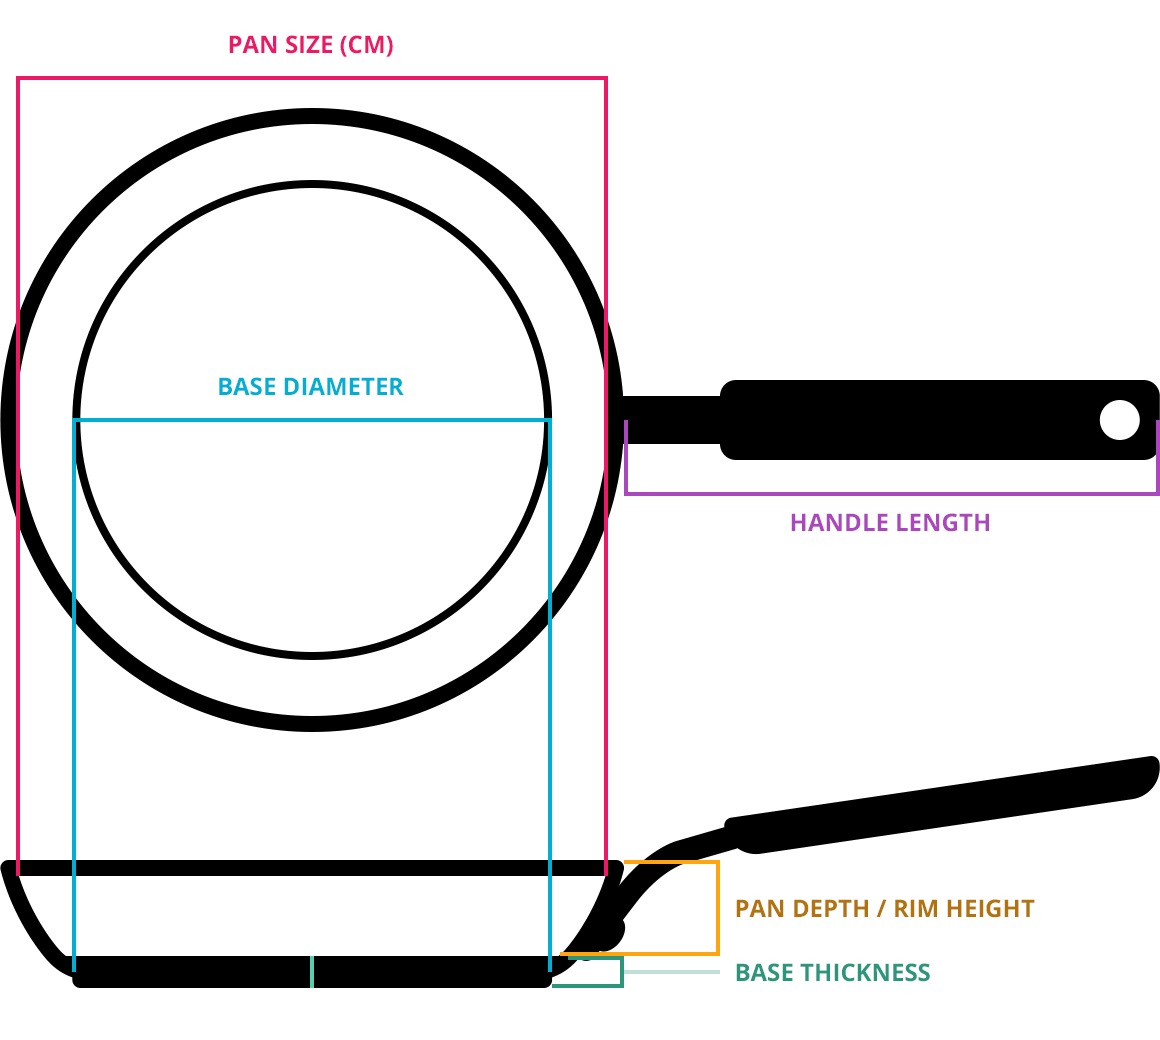 Diagram of how to measure a frying pan